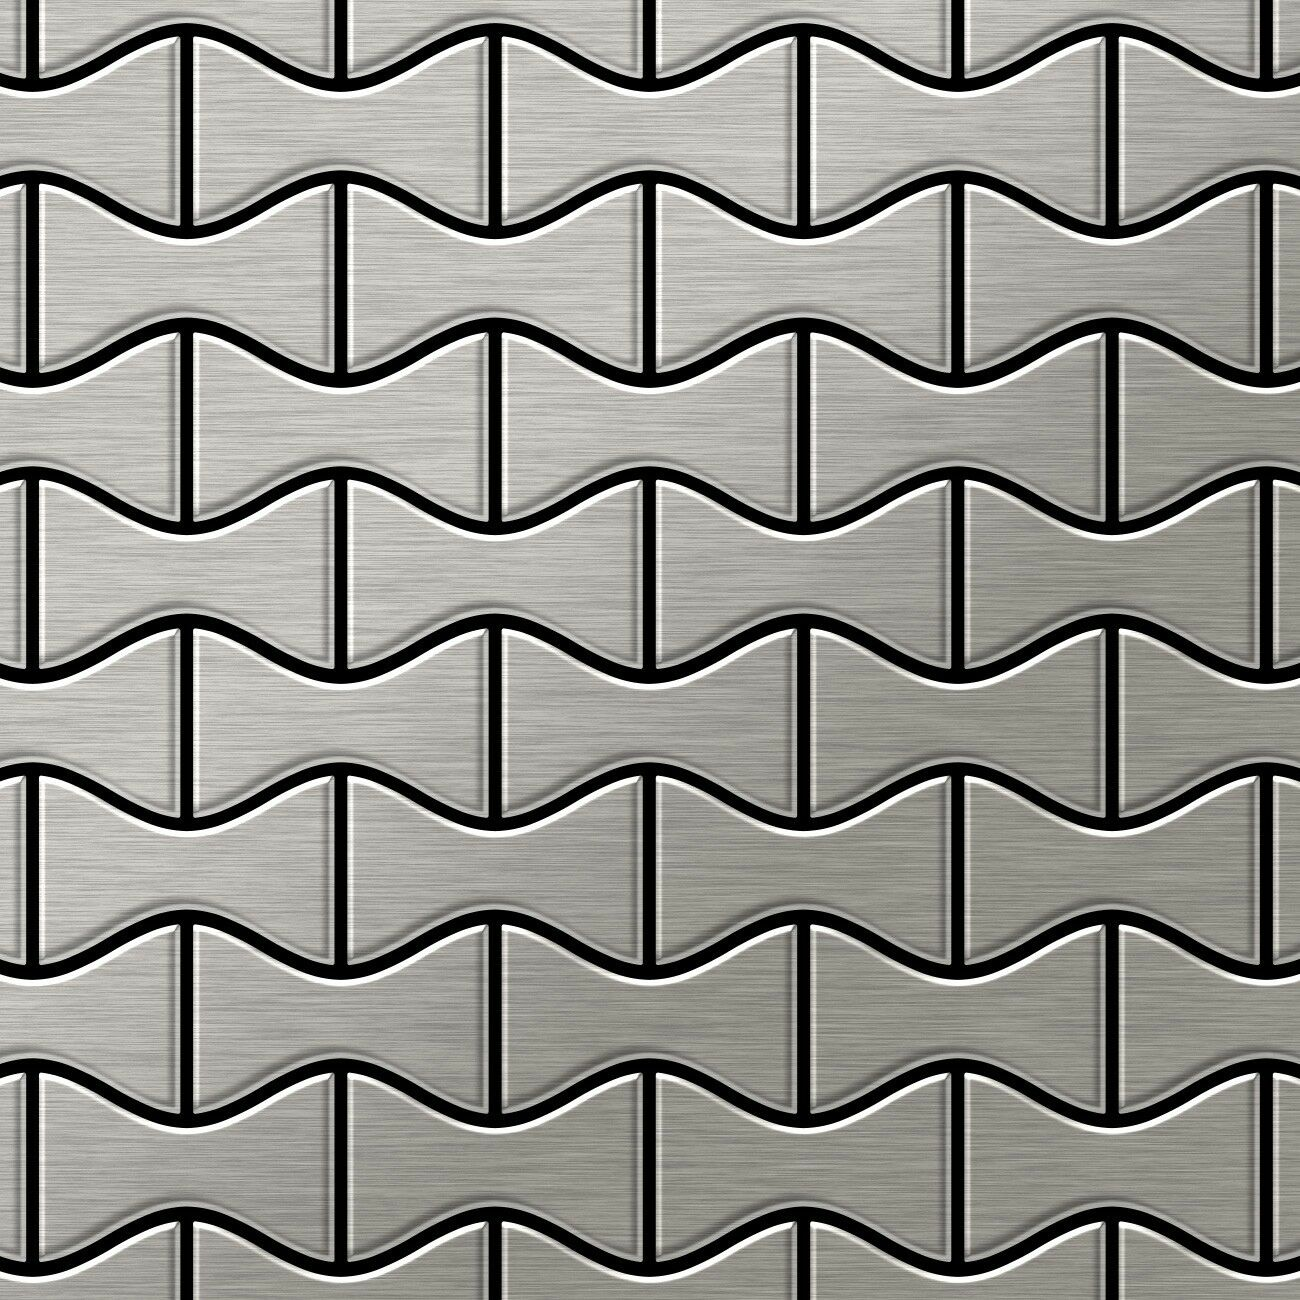 Metal Mosaic Tile Stainless Steel brushed grau 1,6mm Kismet-S-S-B